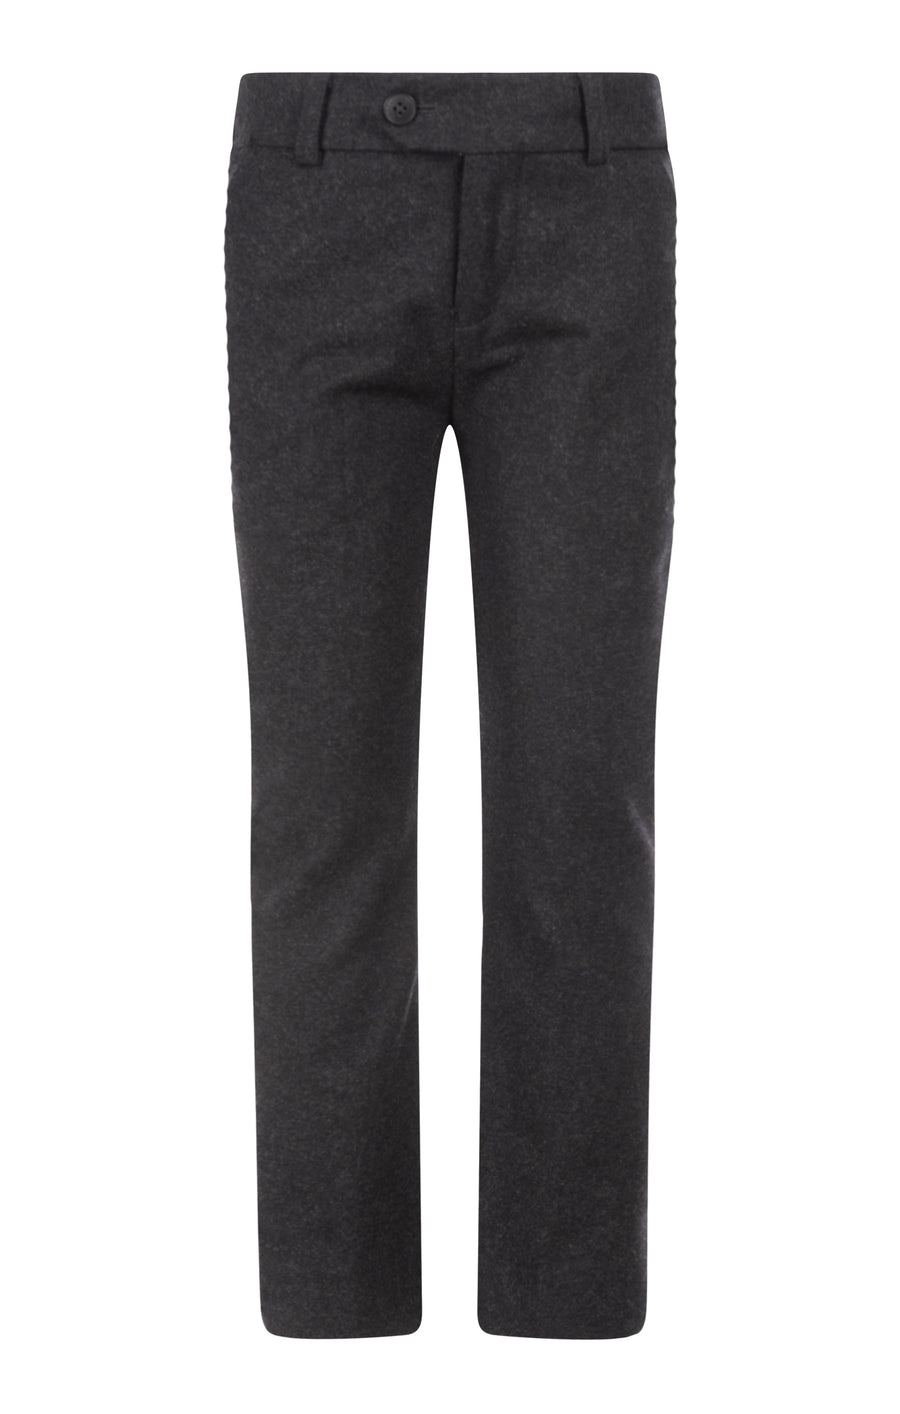 Charcoal Tailored Wool Pants by Appaman